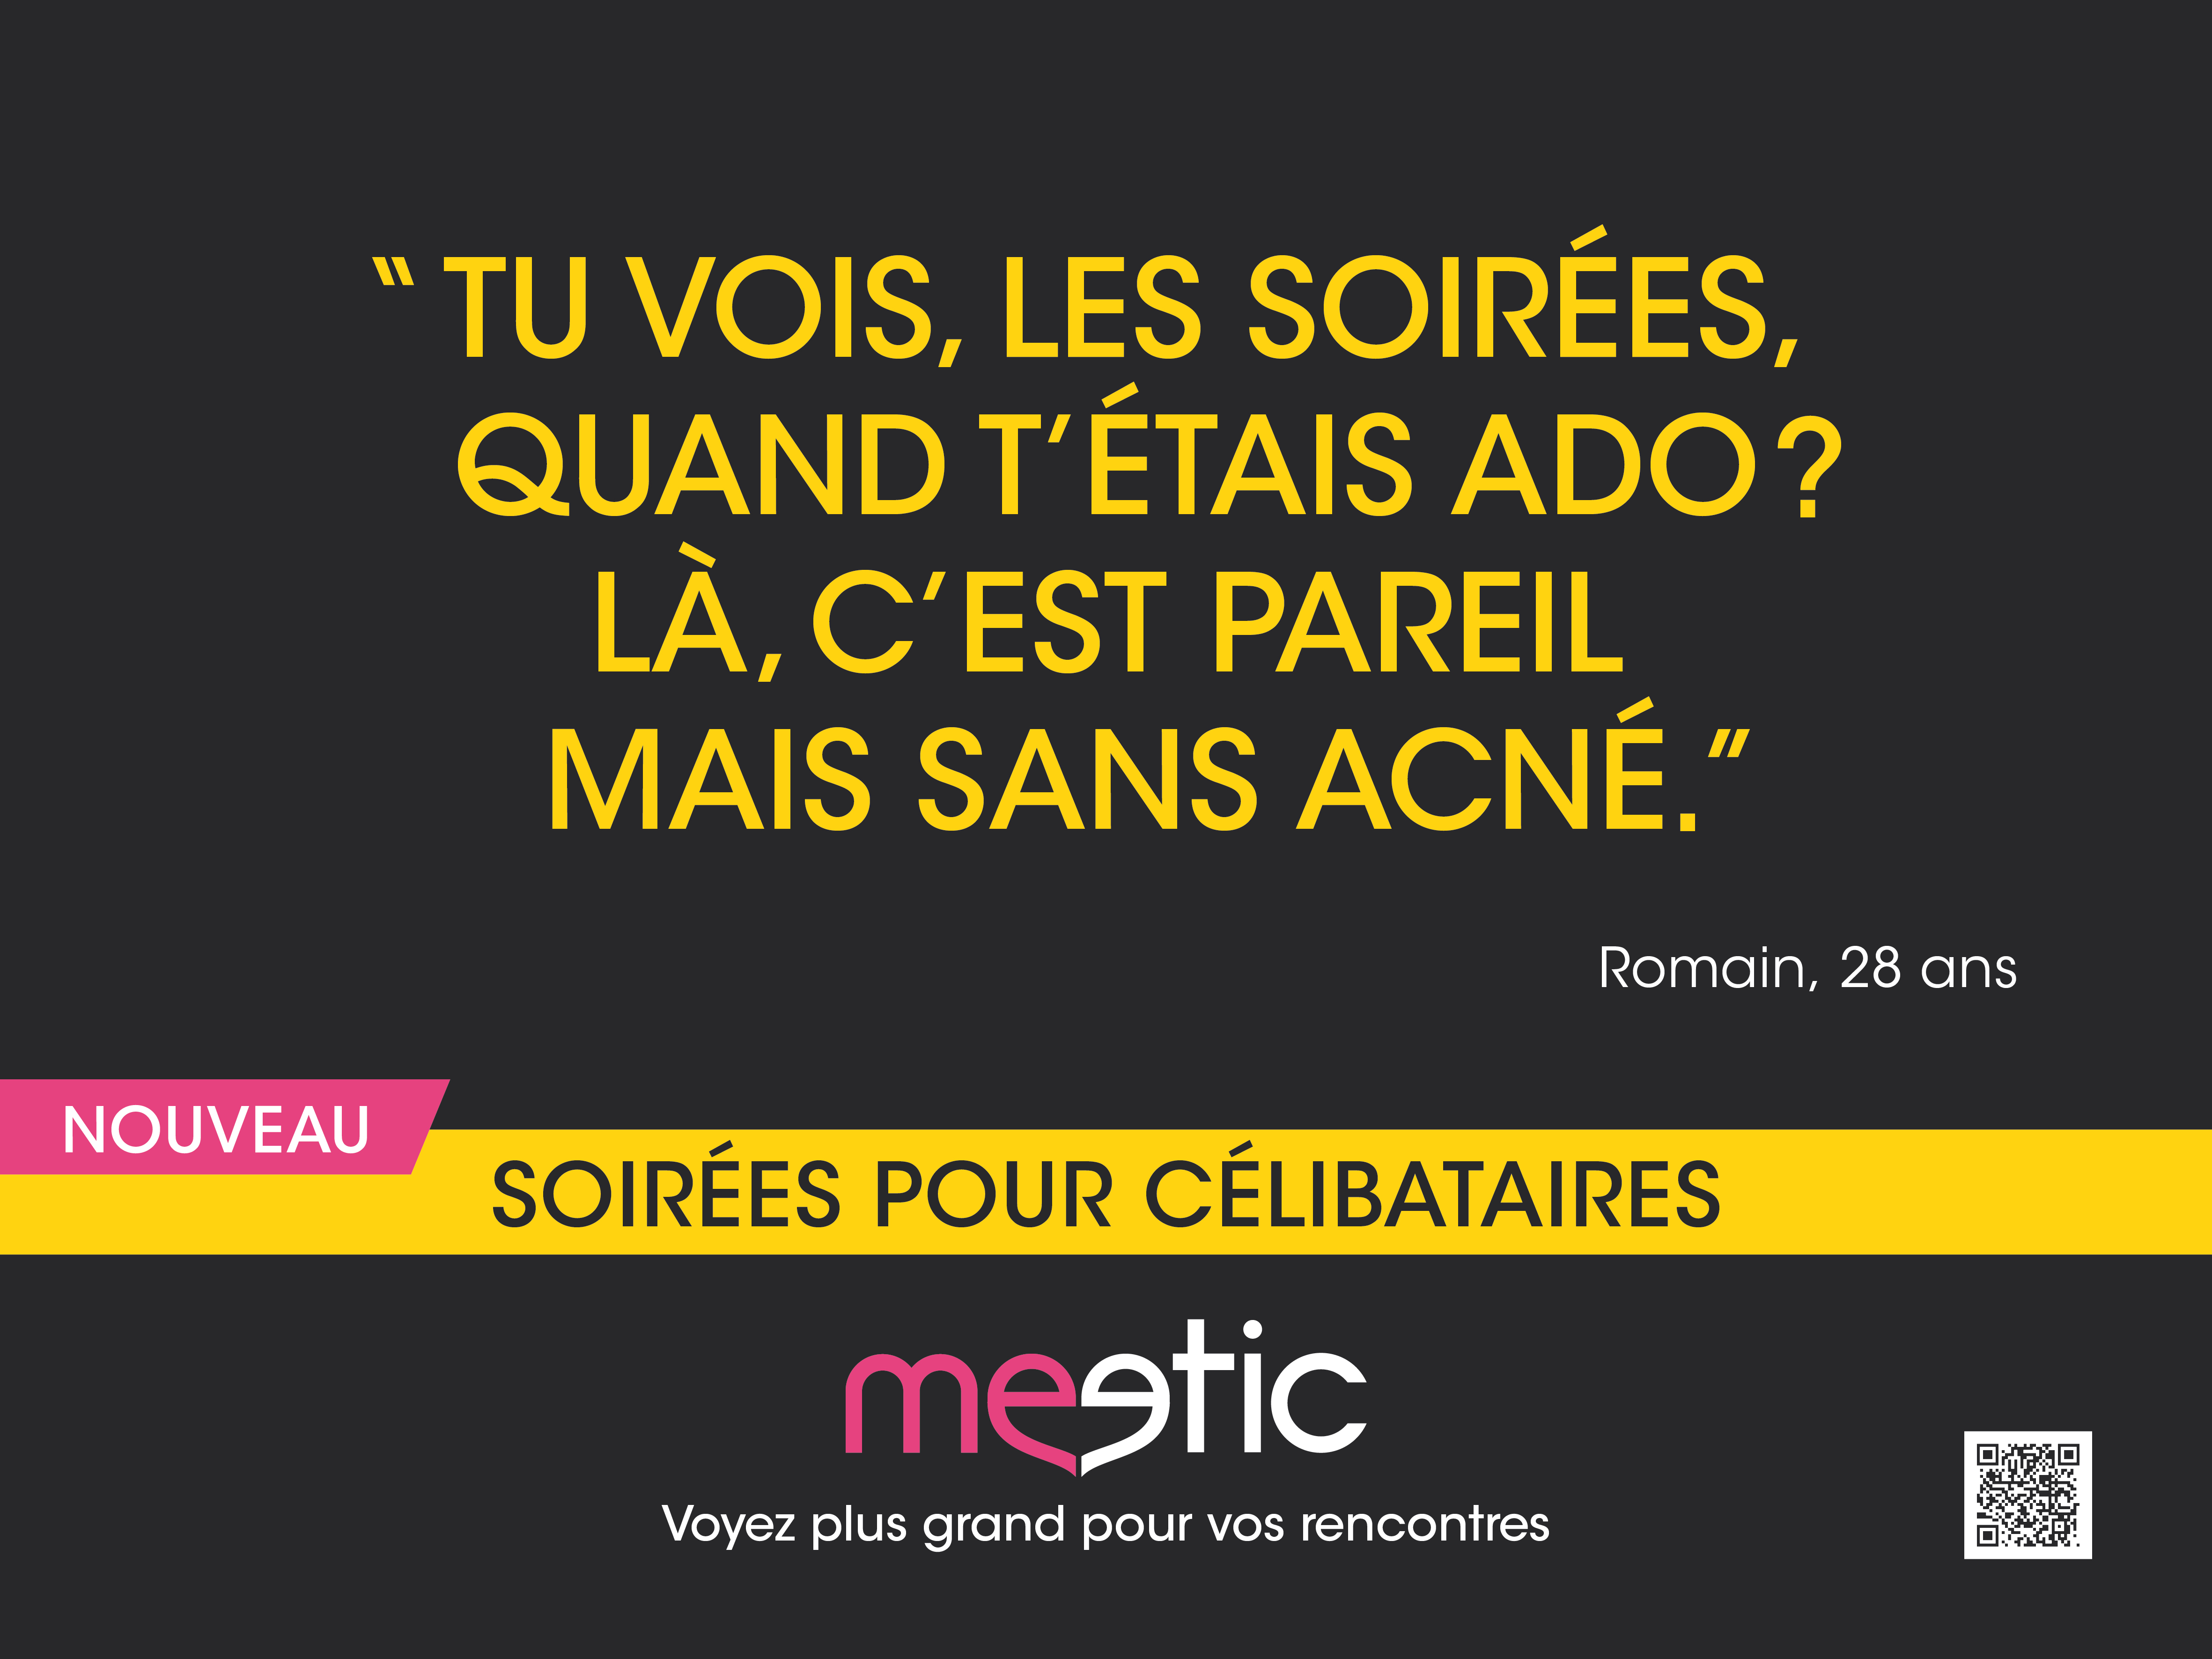 meetic site de rencontre